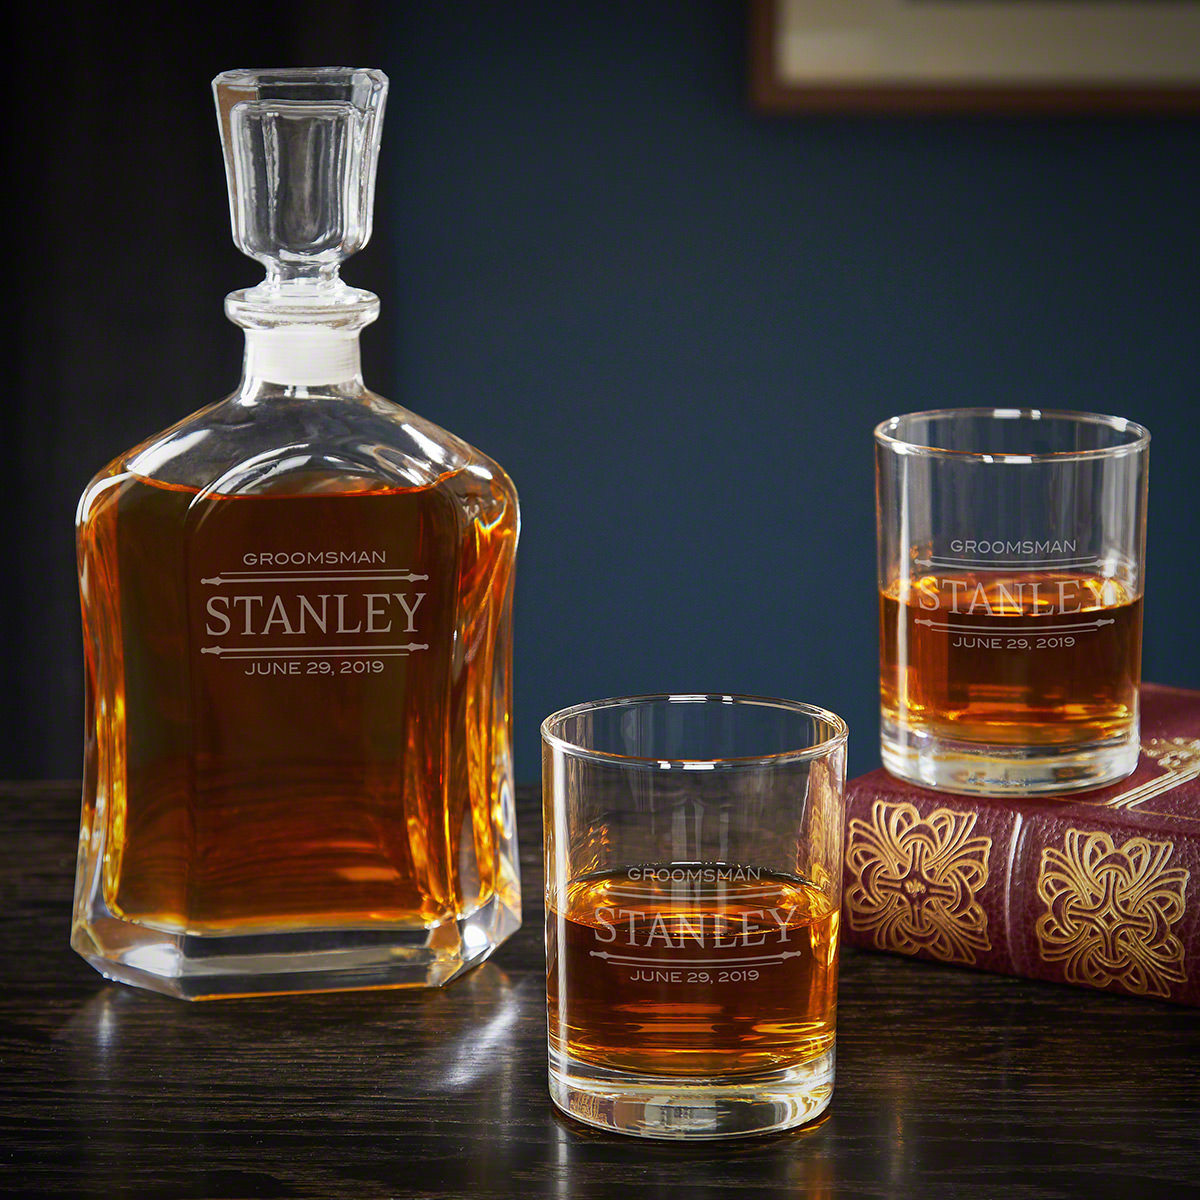 Stanford Personalized Groomsmen Decanter Gift Set